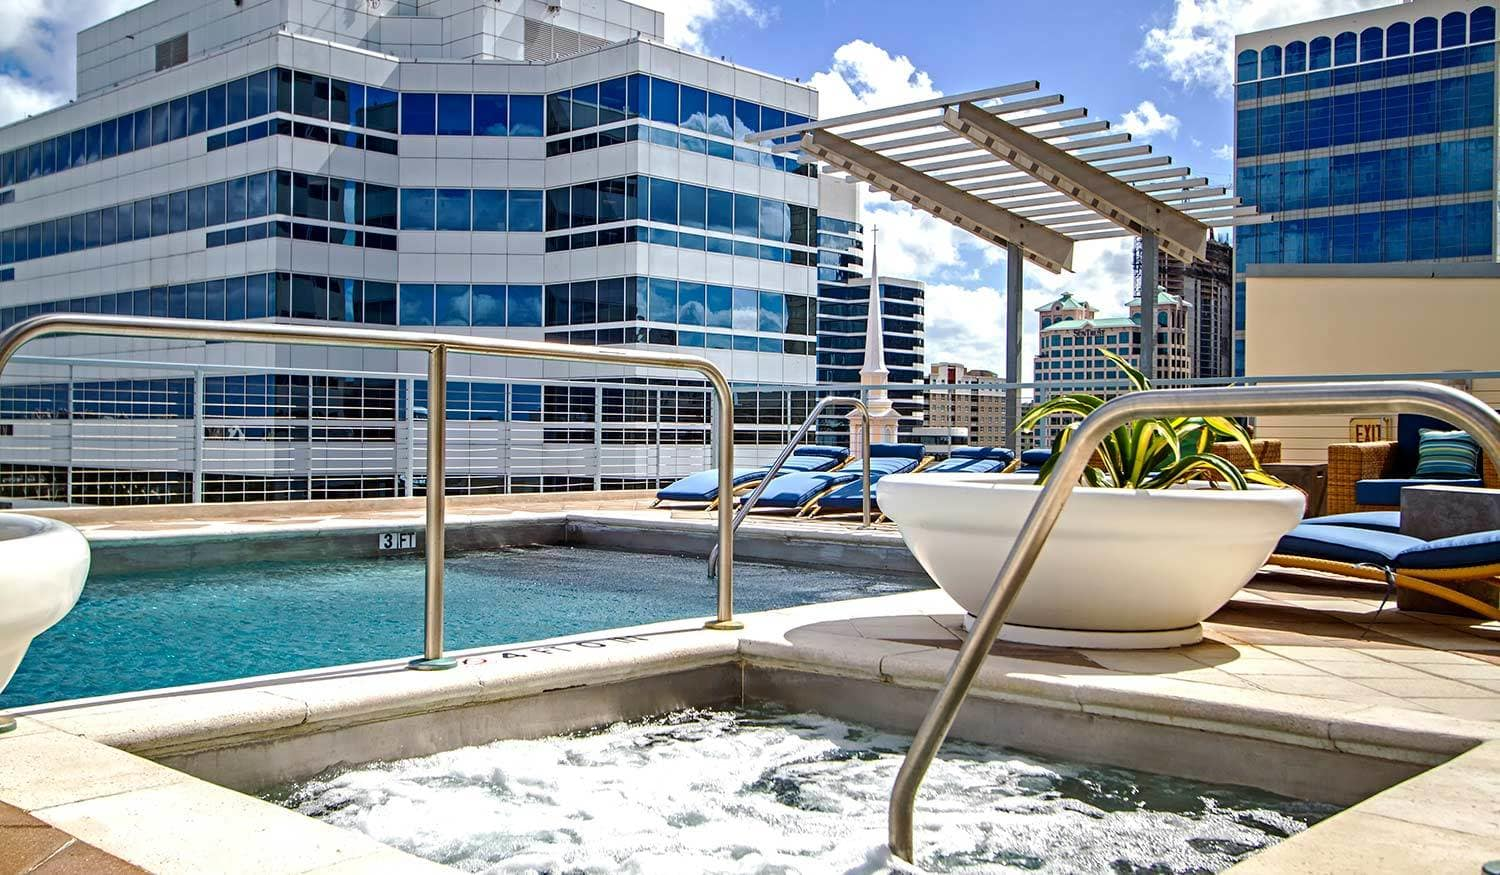 Rooftop jacuzzi at The Exchange Lofts in Fort Lauderdale, Florida.